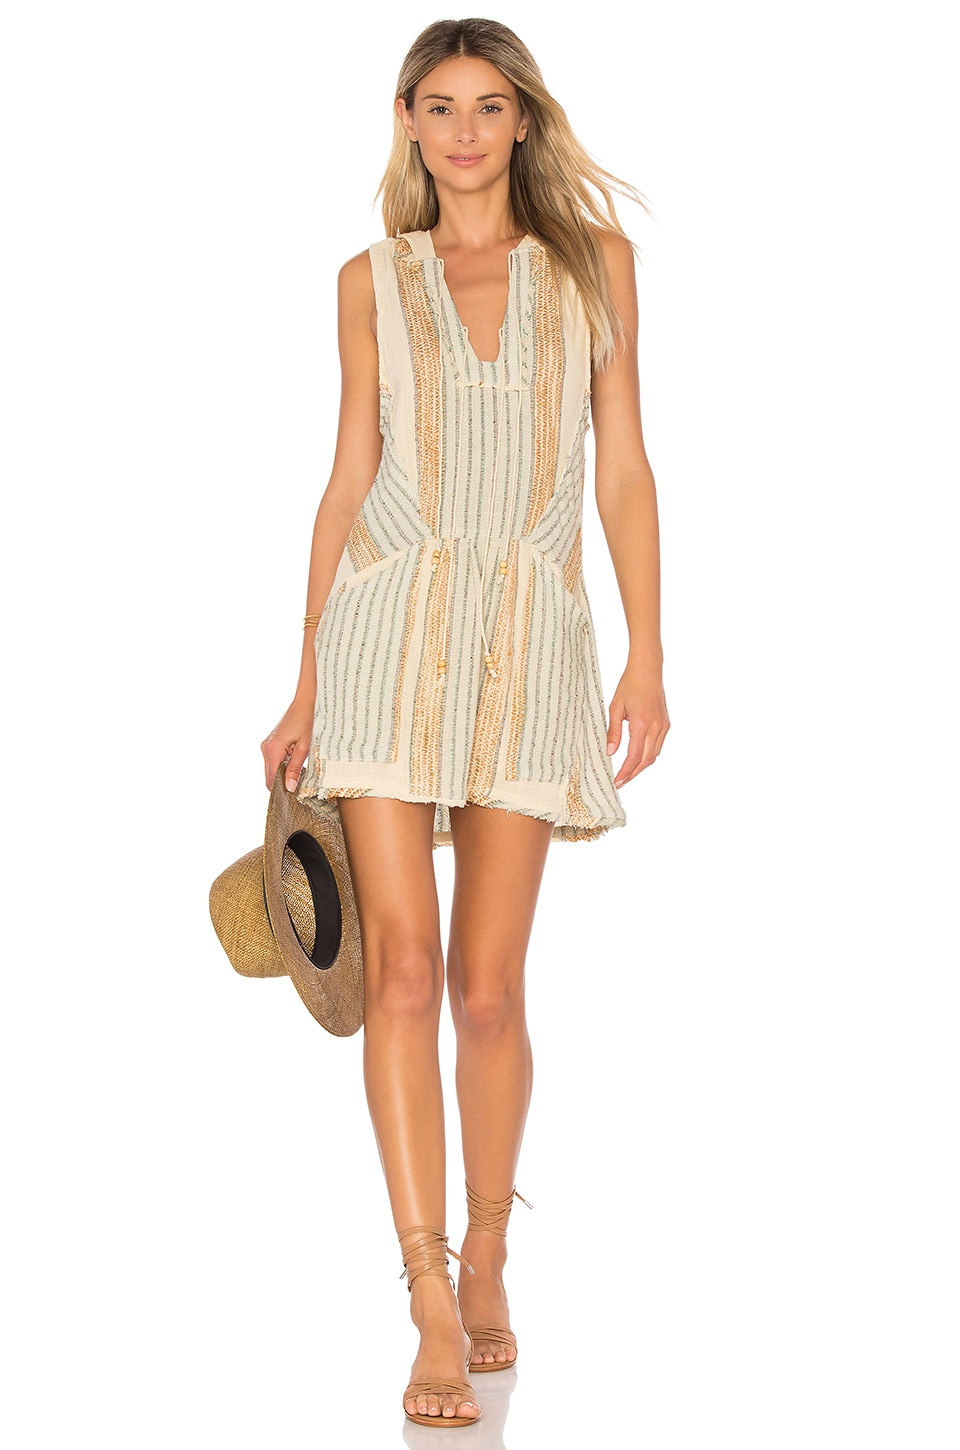 All Right Now Mini by Free People